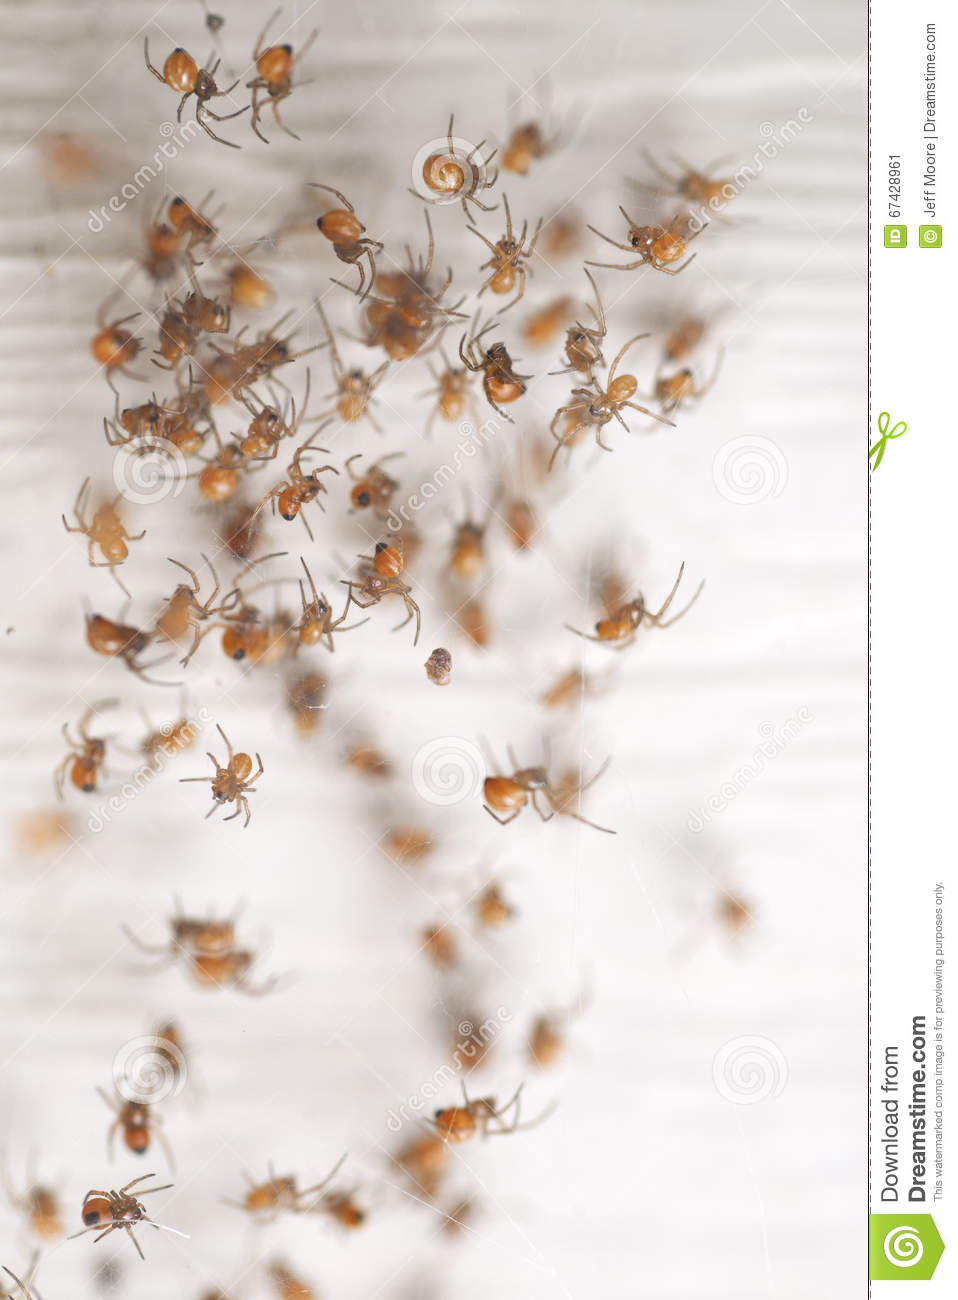 Baby Black Widow Spiders Stock Image Image Of Take Baby